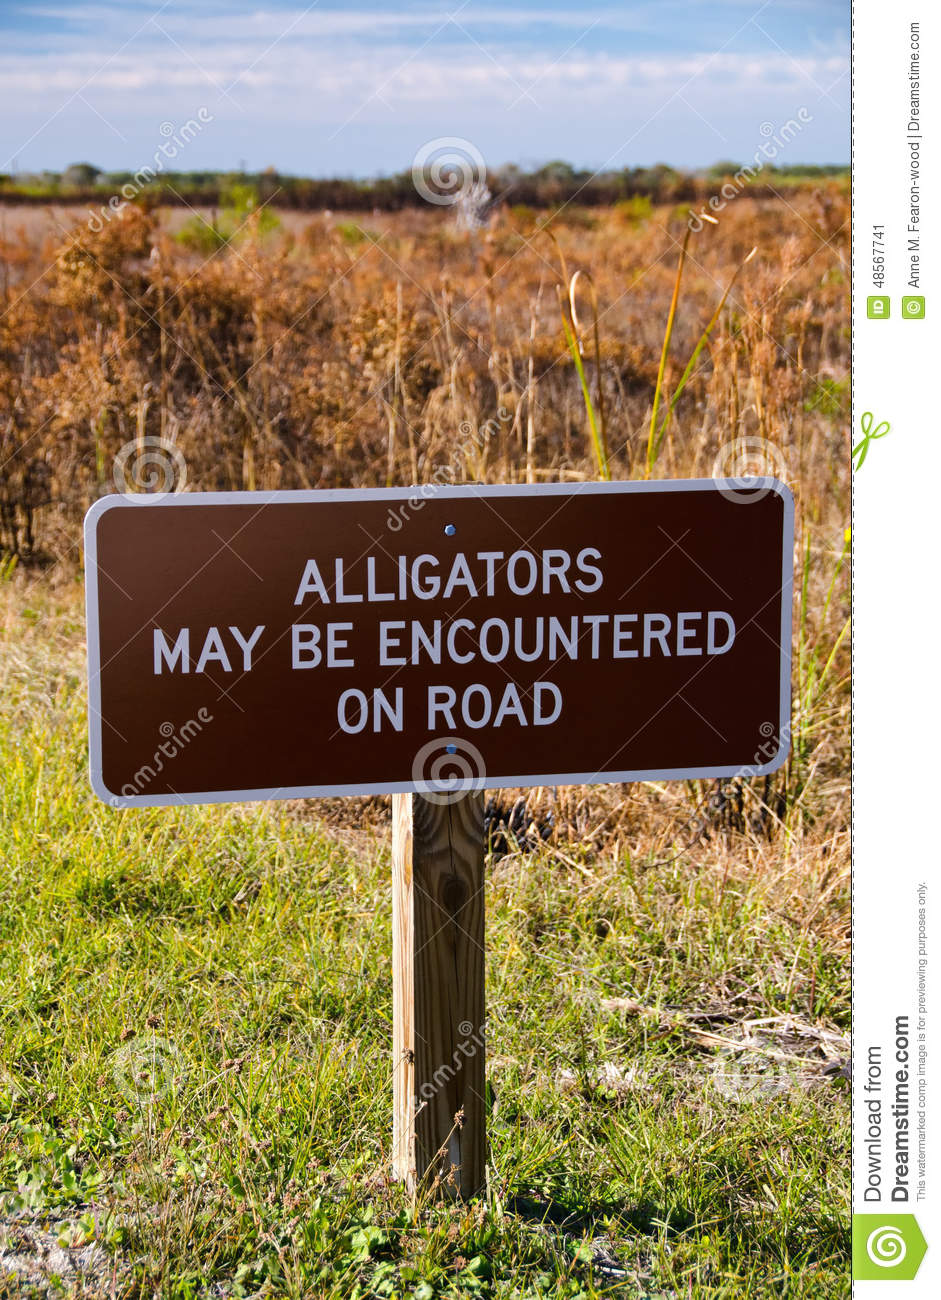 an image of alligators be encountered on road sign stock photo an image of alligators be encountered on road sign